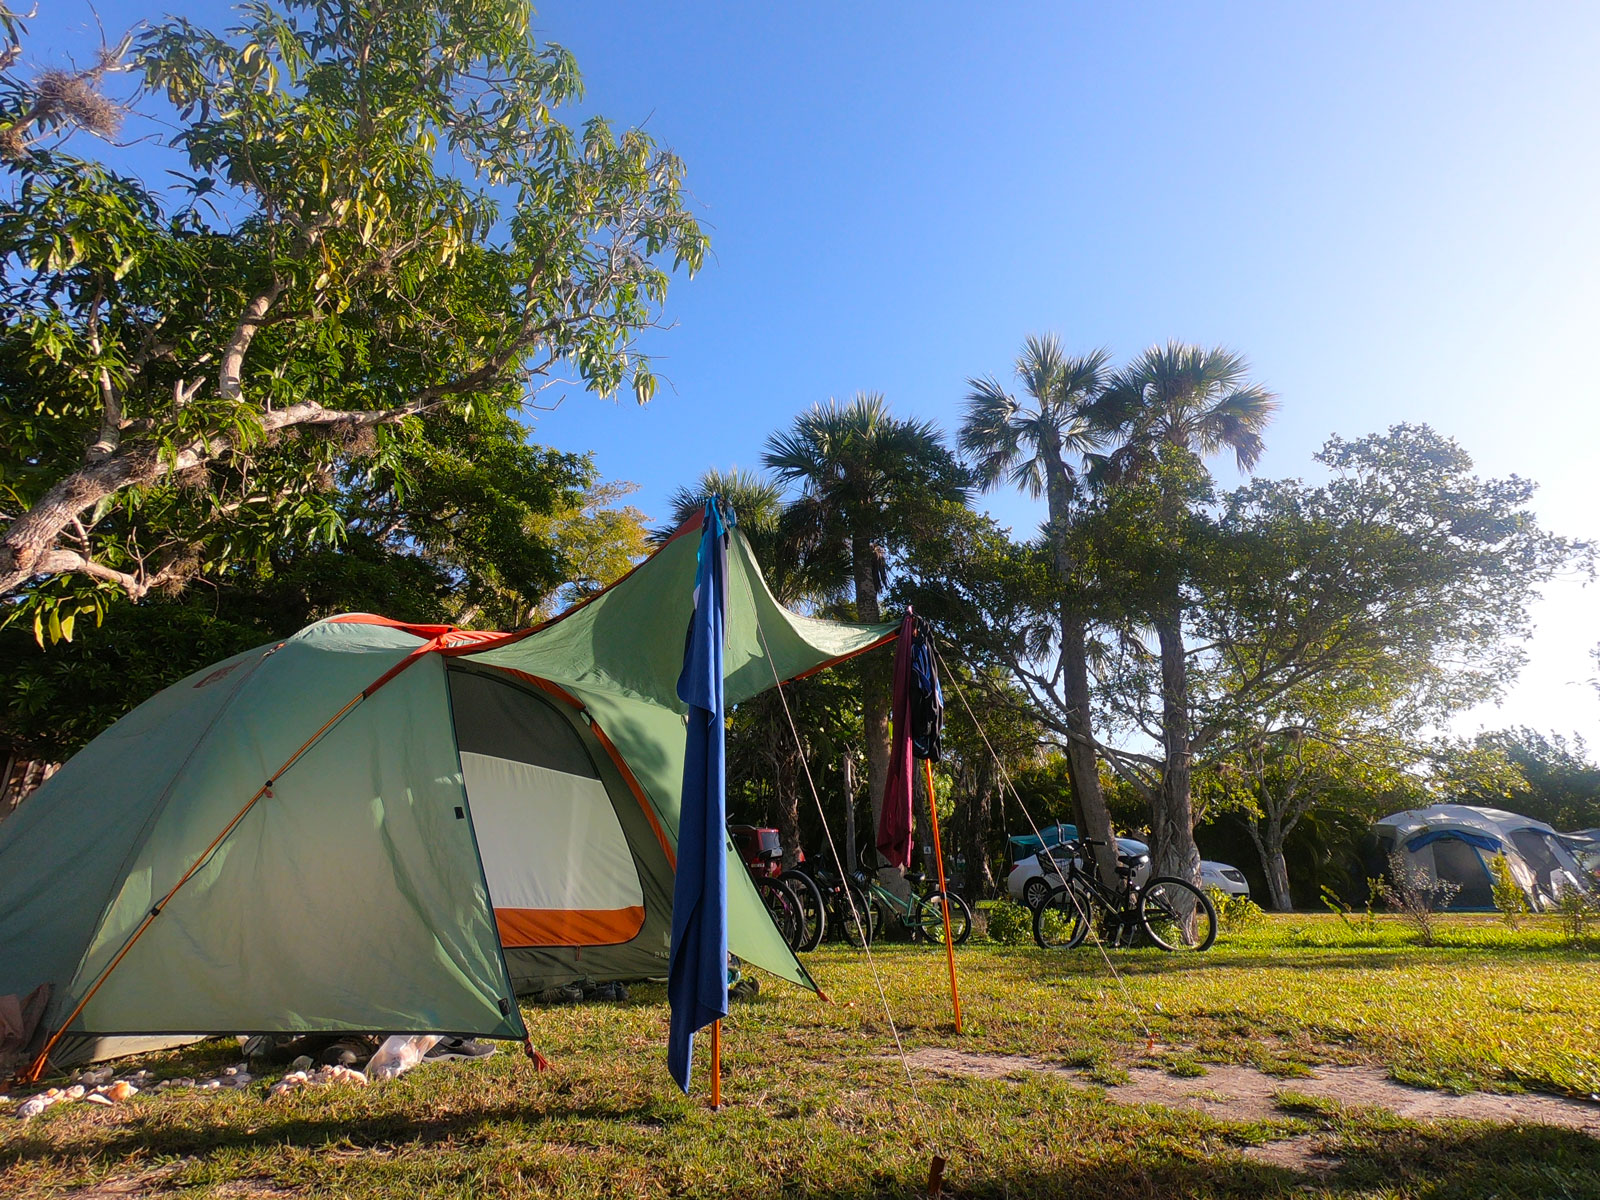 Tent and bikes while camping at  Periwinkle Park and Campground, Sanibel Island, Florida